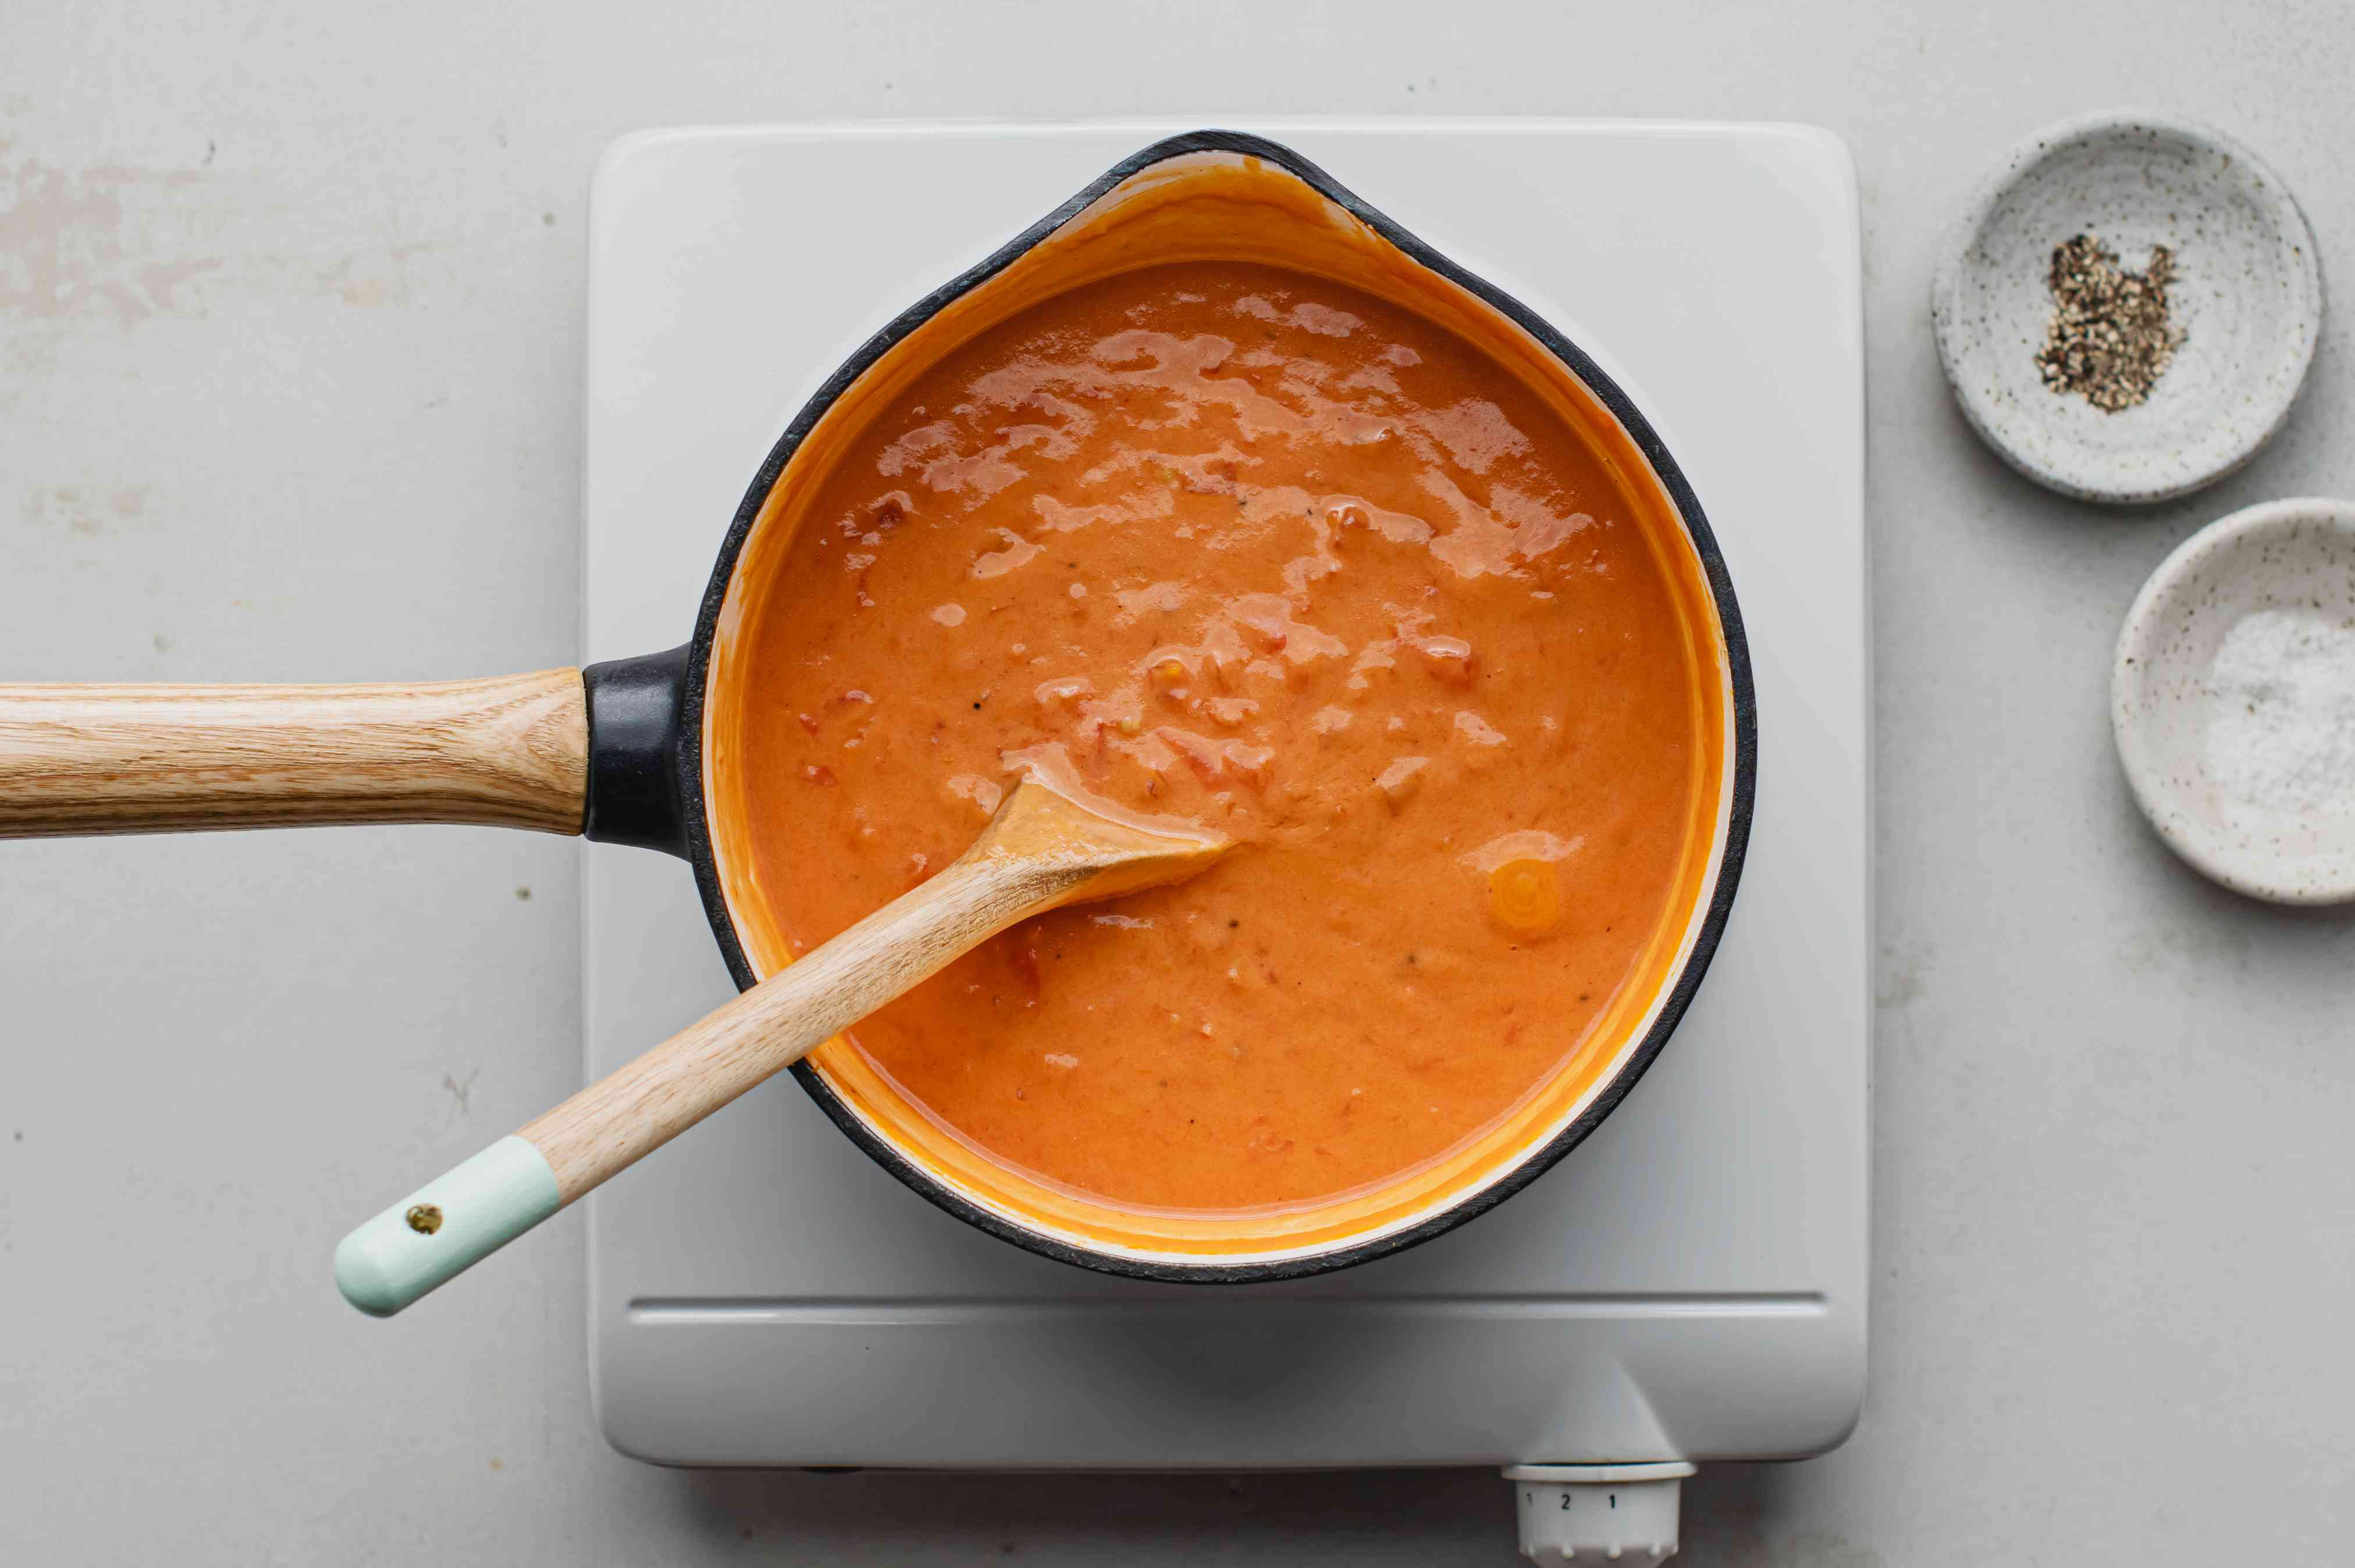 Tomato paste added to the old-fashioned Southern tomato gravy